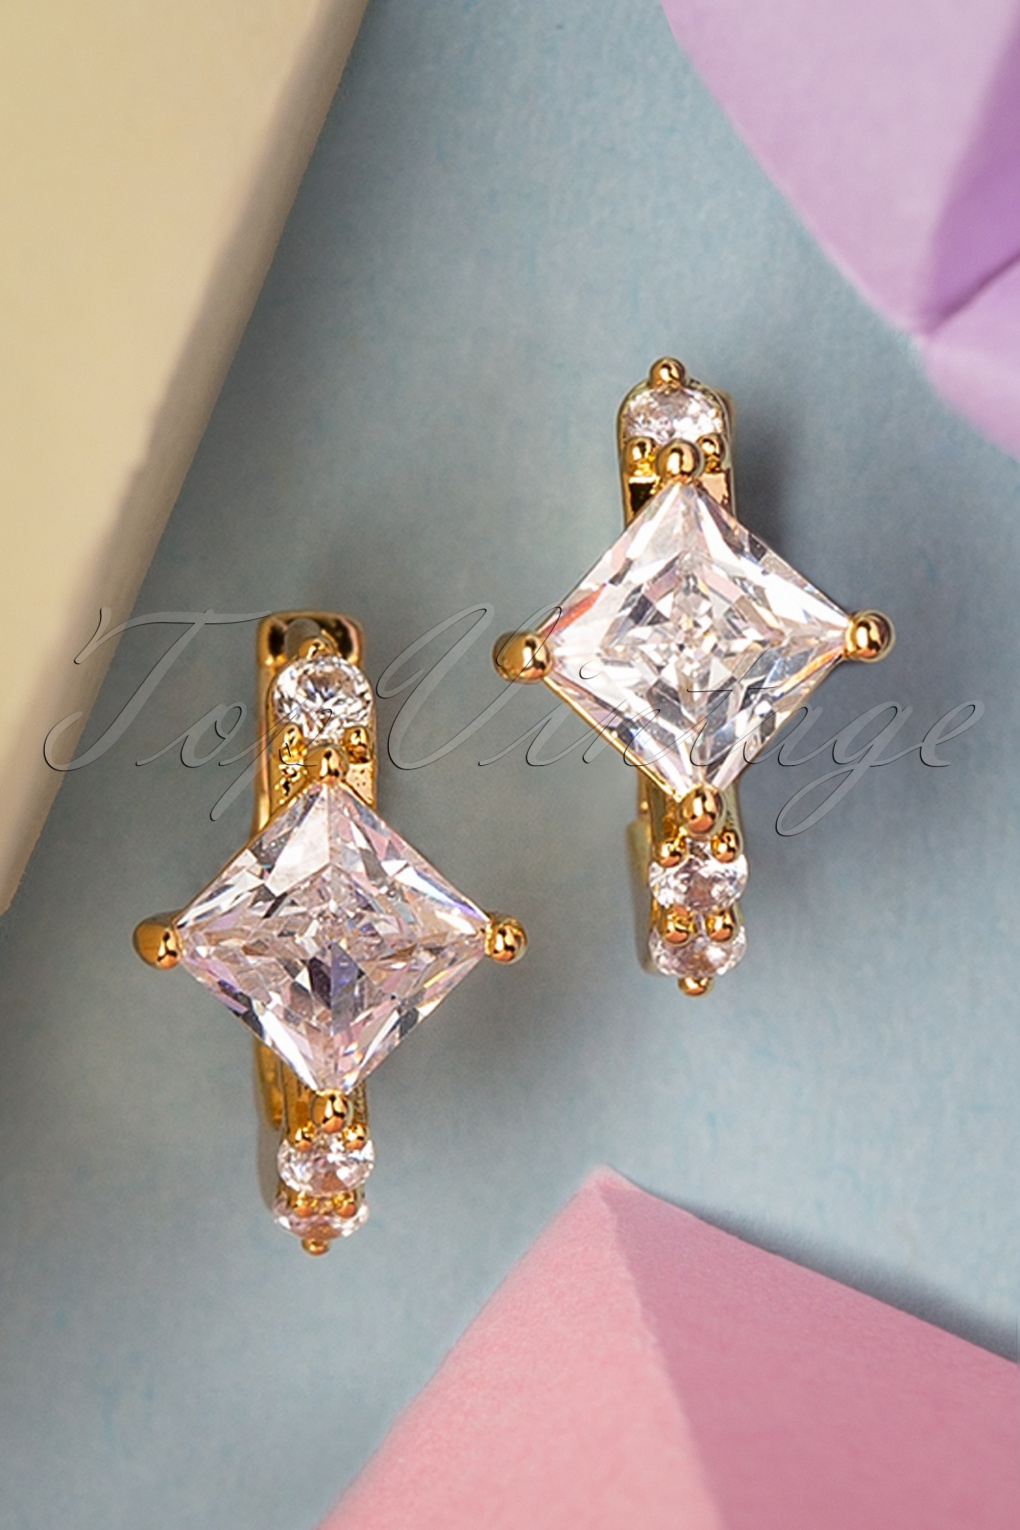 Vintage Style Jewelry, Retro Jewelry 50s Crystal Stone Earrings in Gold £8.24 AT vintagedancer.com